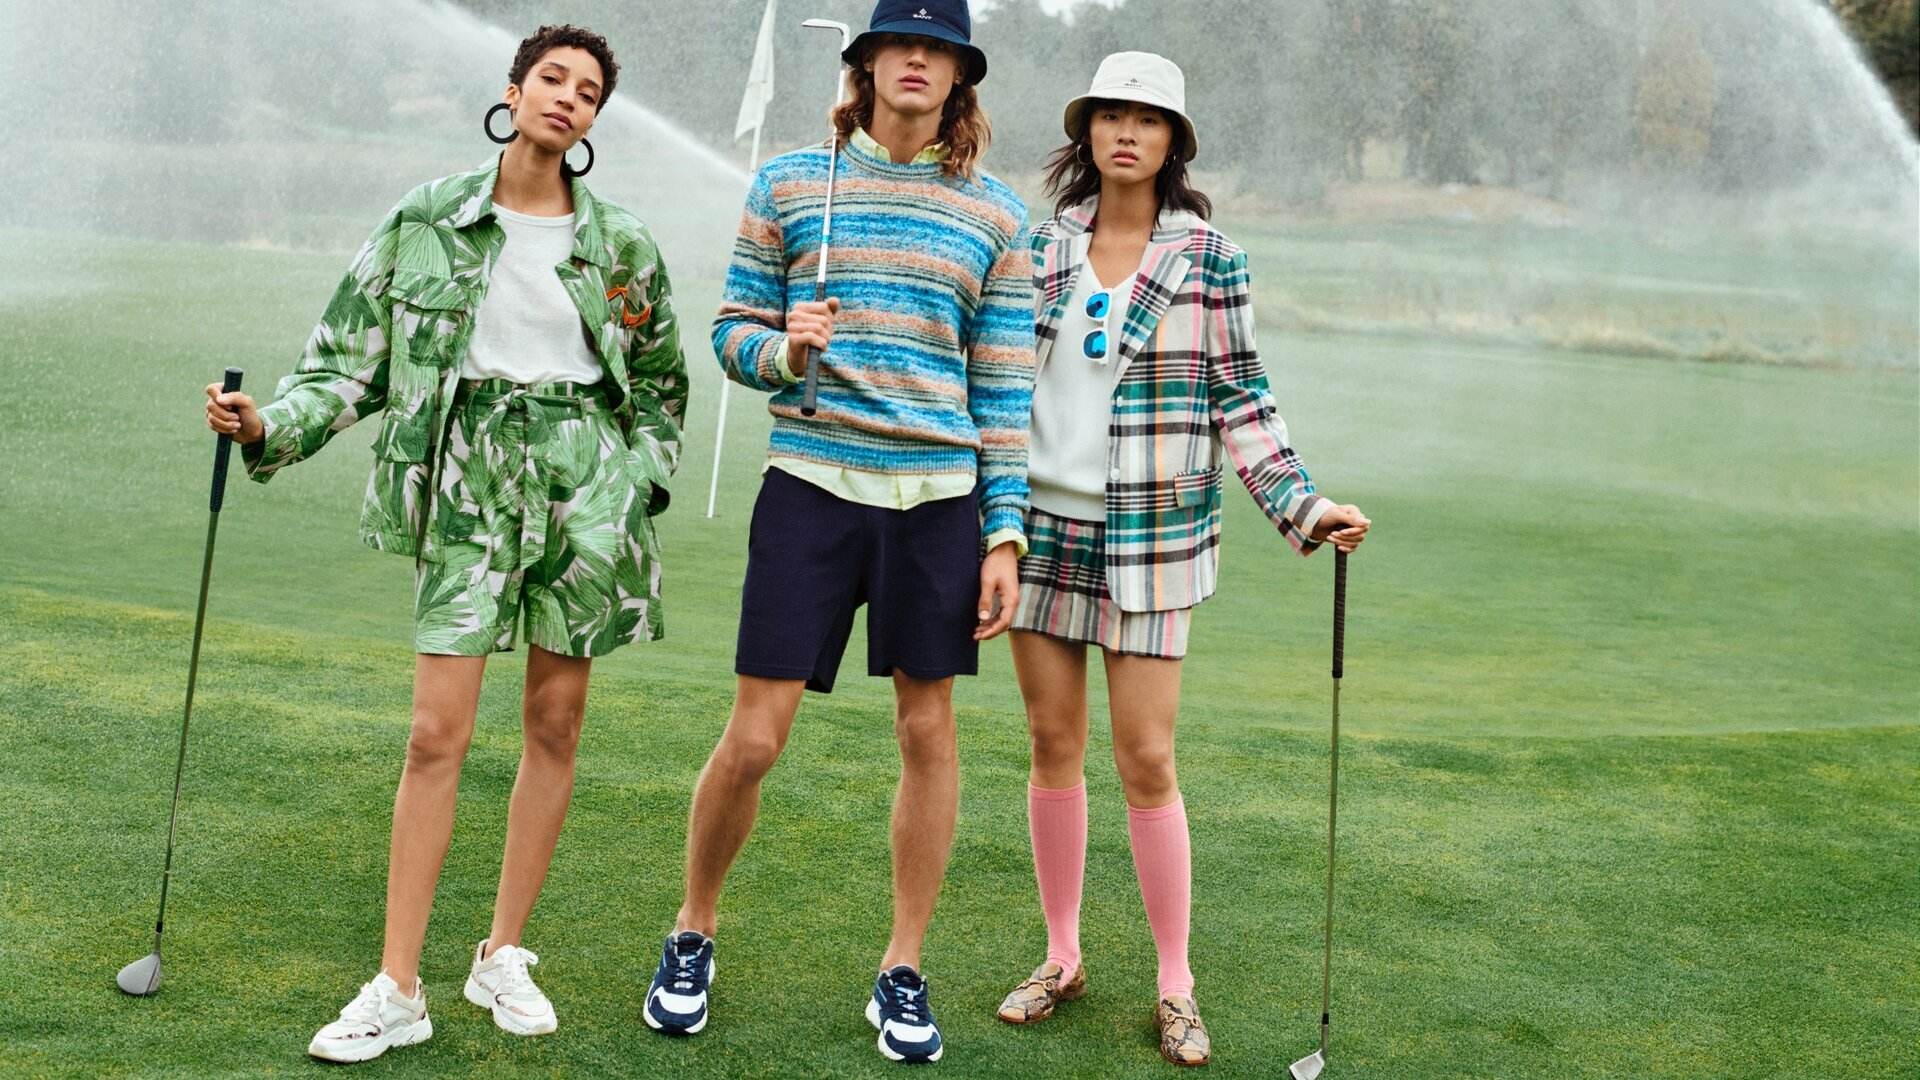 2 girls and a boy playing golf